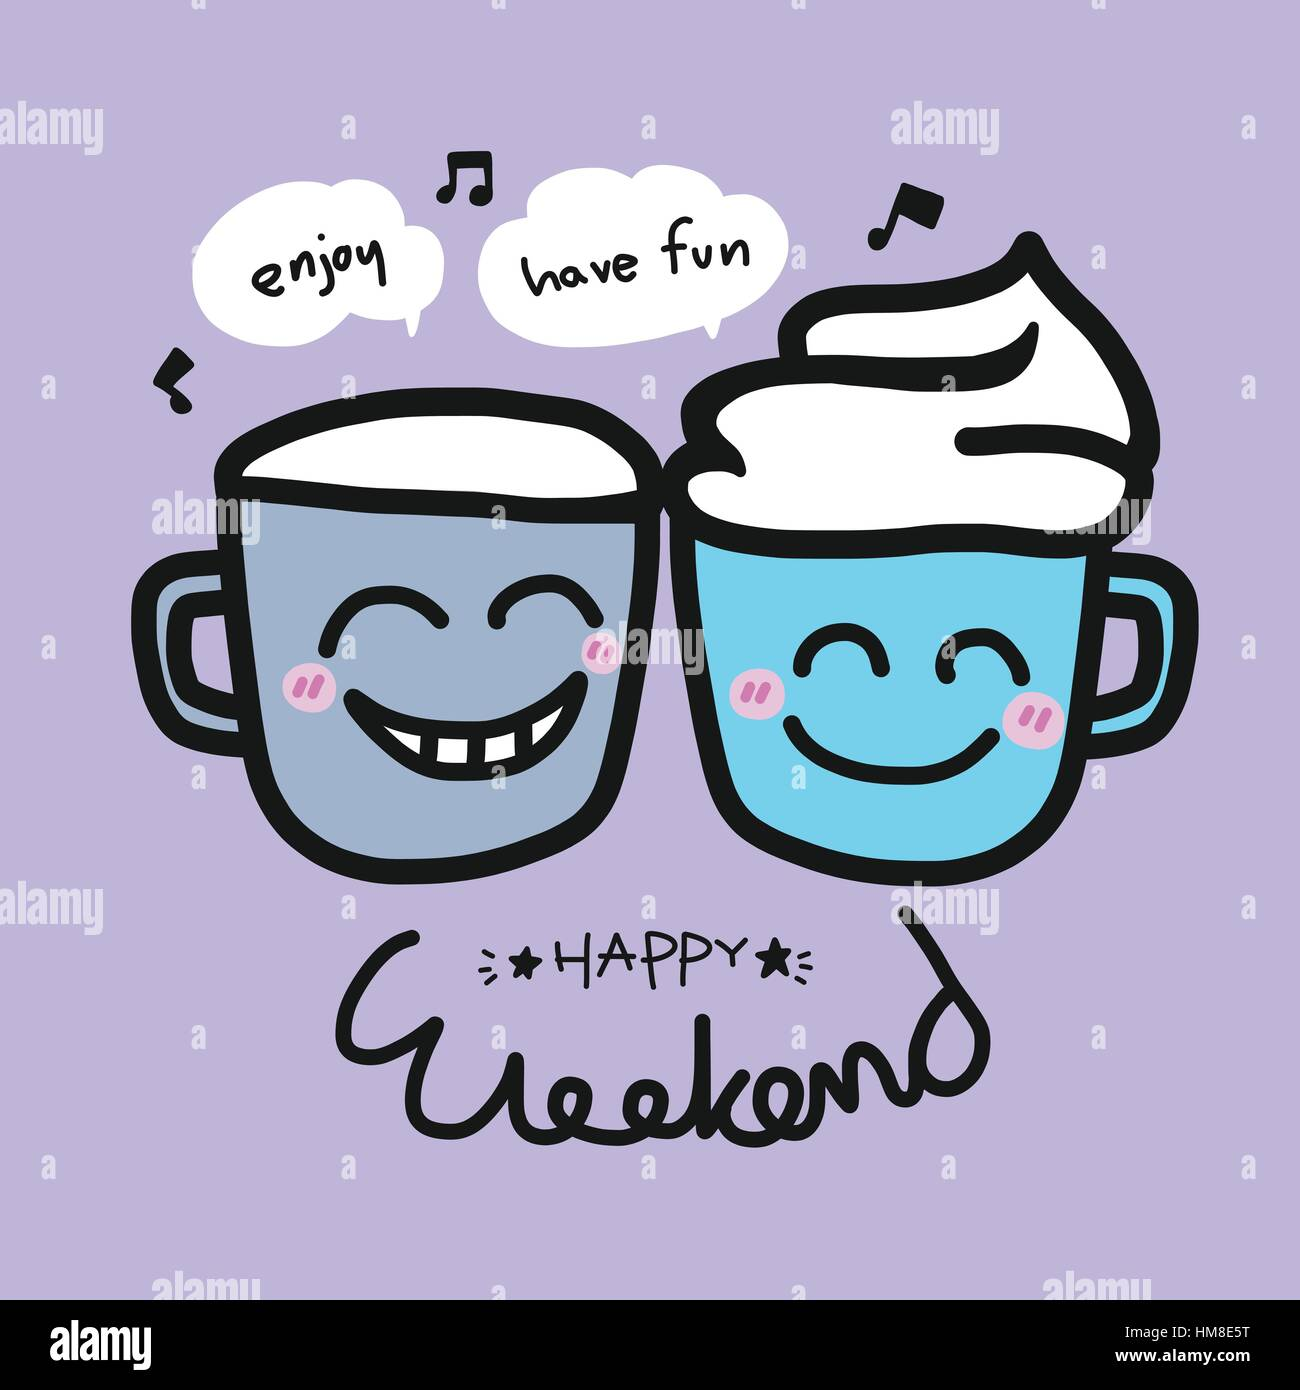 Happy weekend coffee cup cartoon illustration on purple background - Stock Vector